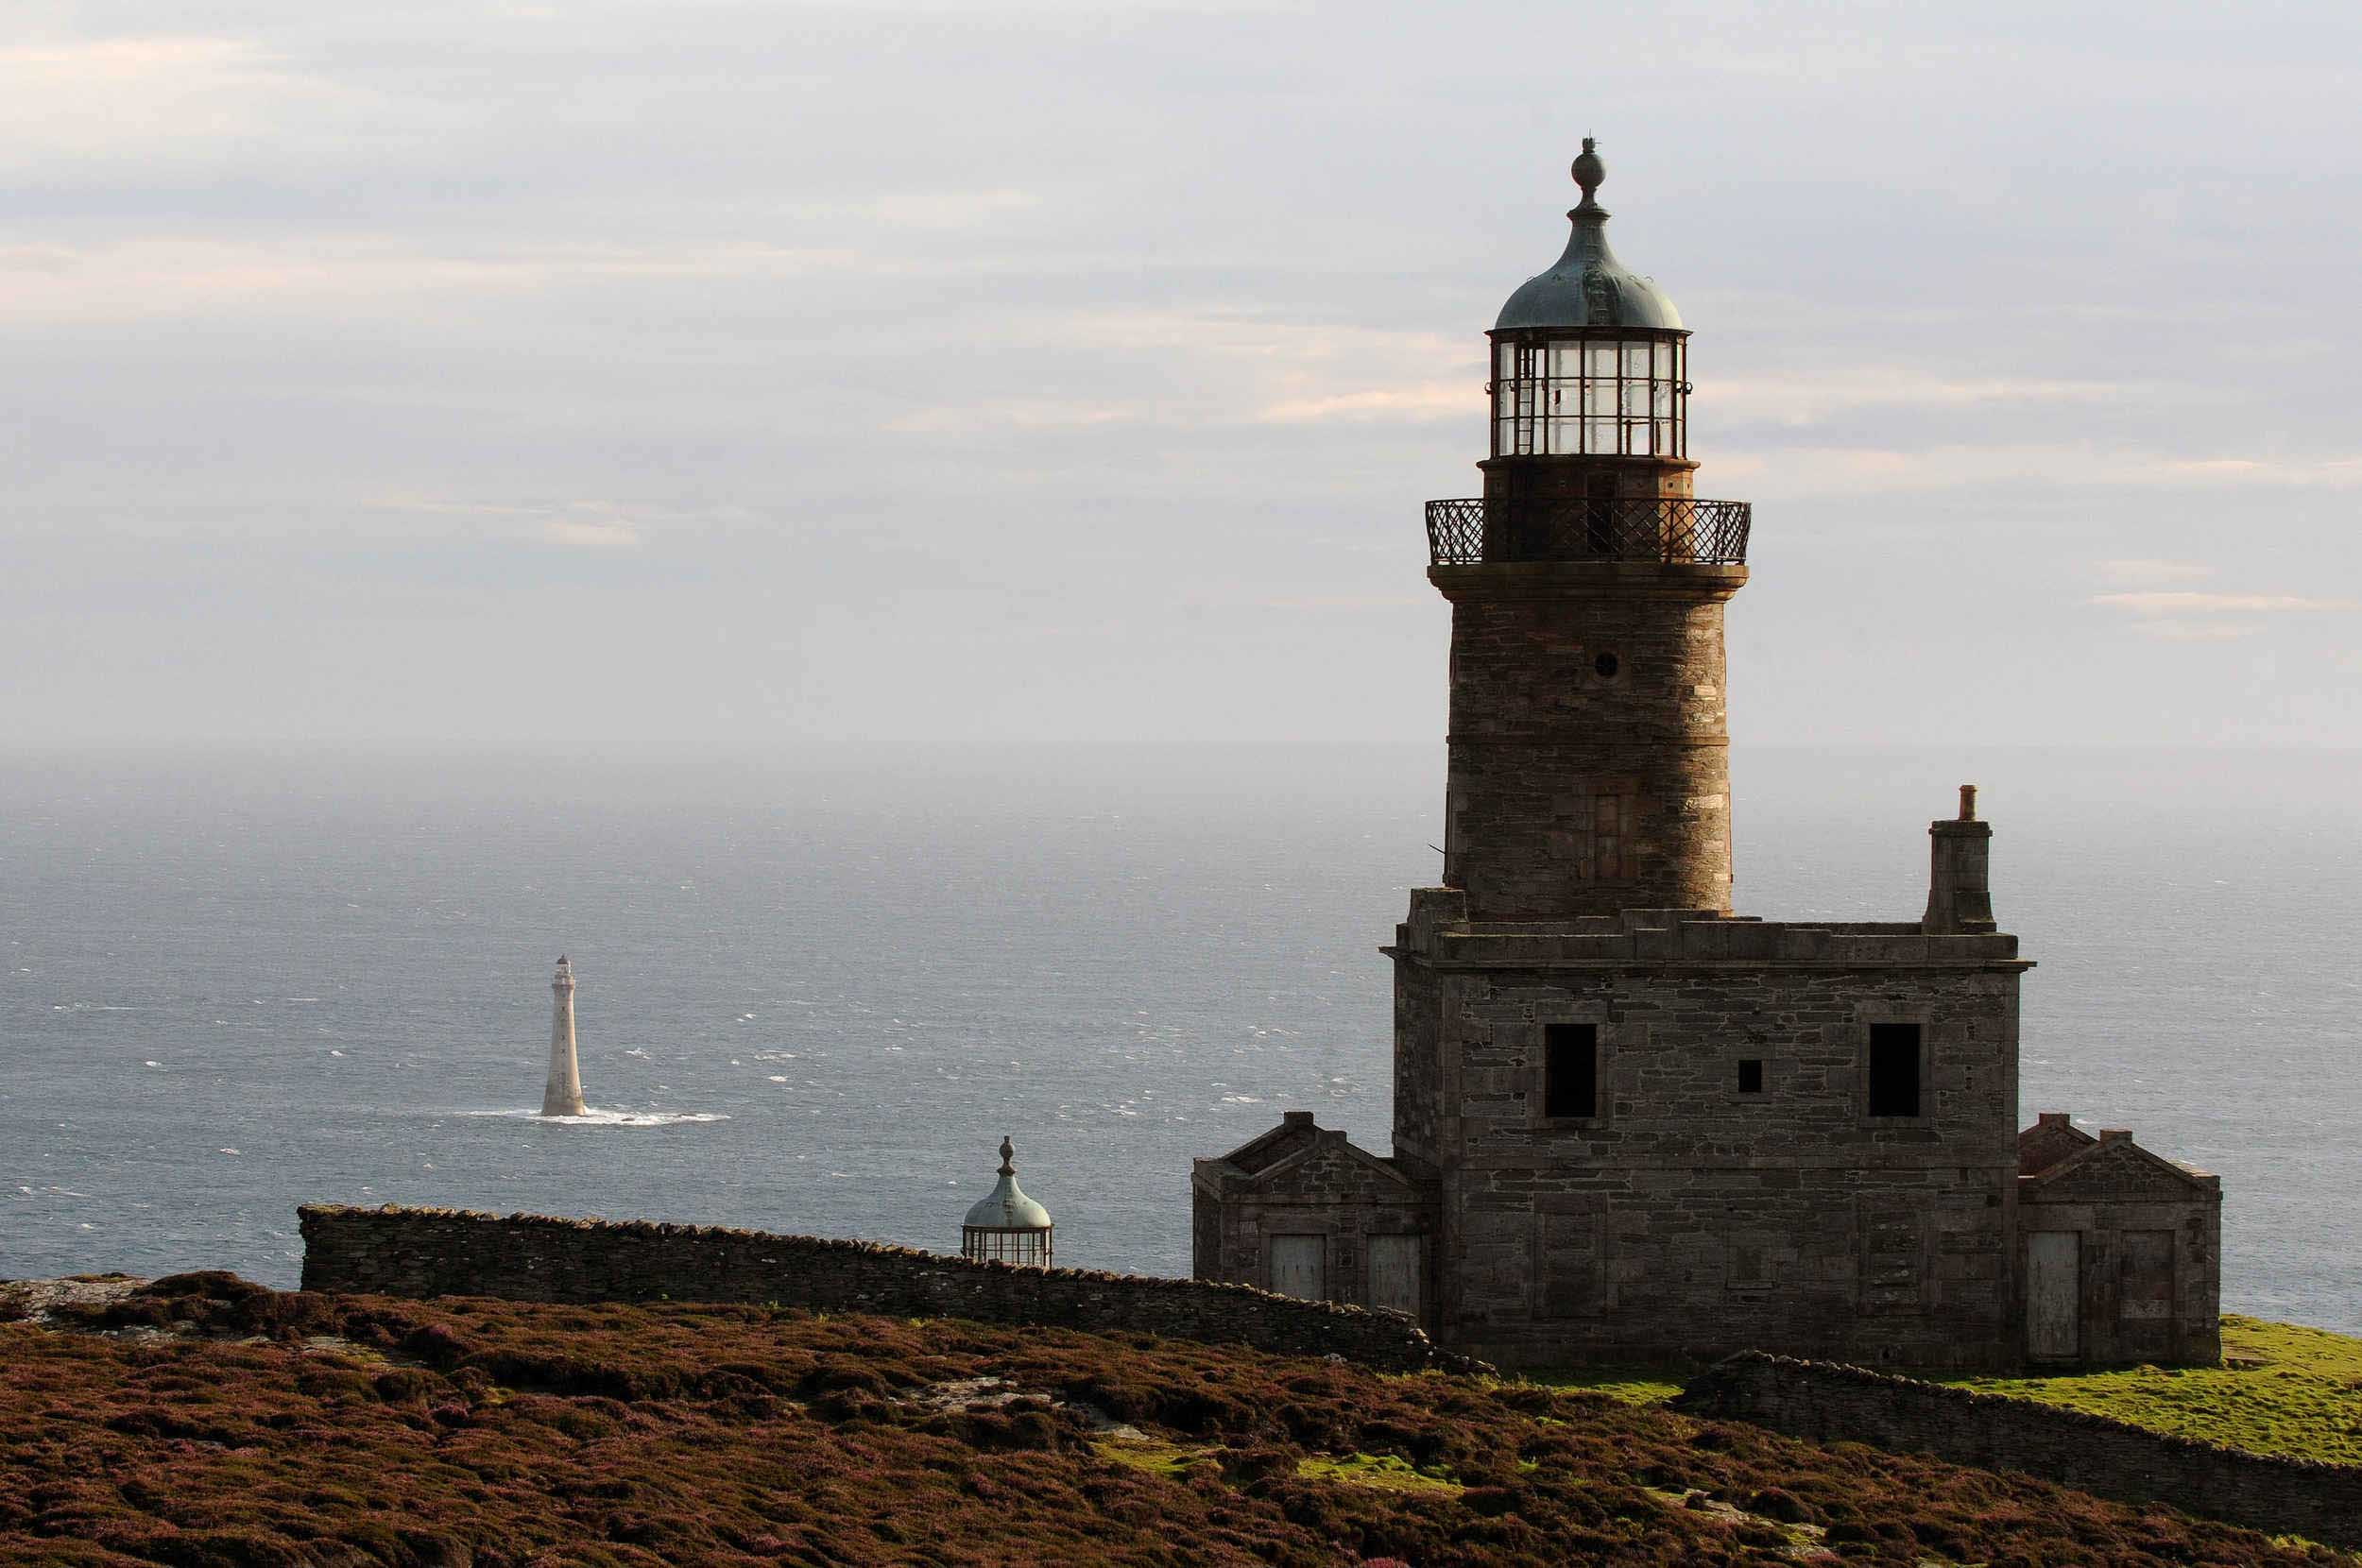 The Stevenson lighthouses on the Calf of Man, pointing towards Chicken Rock